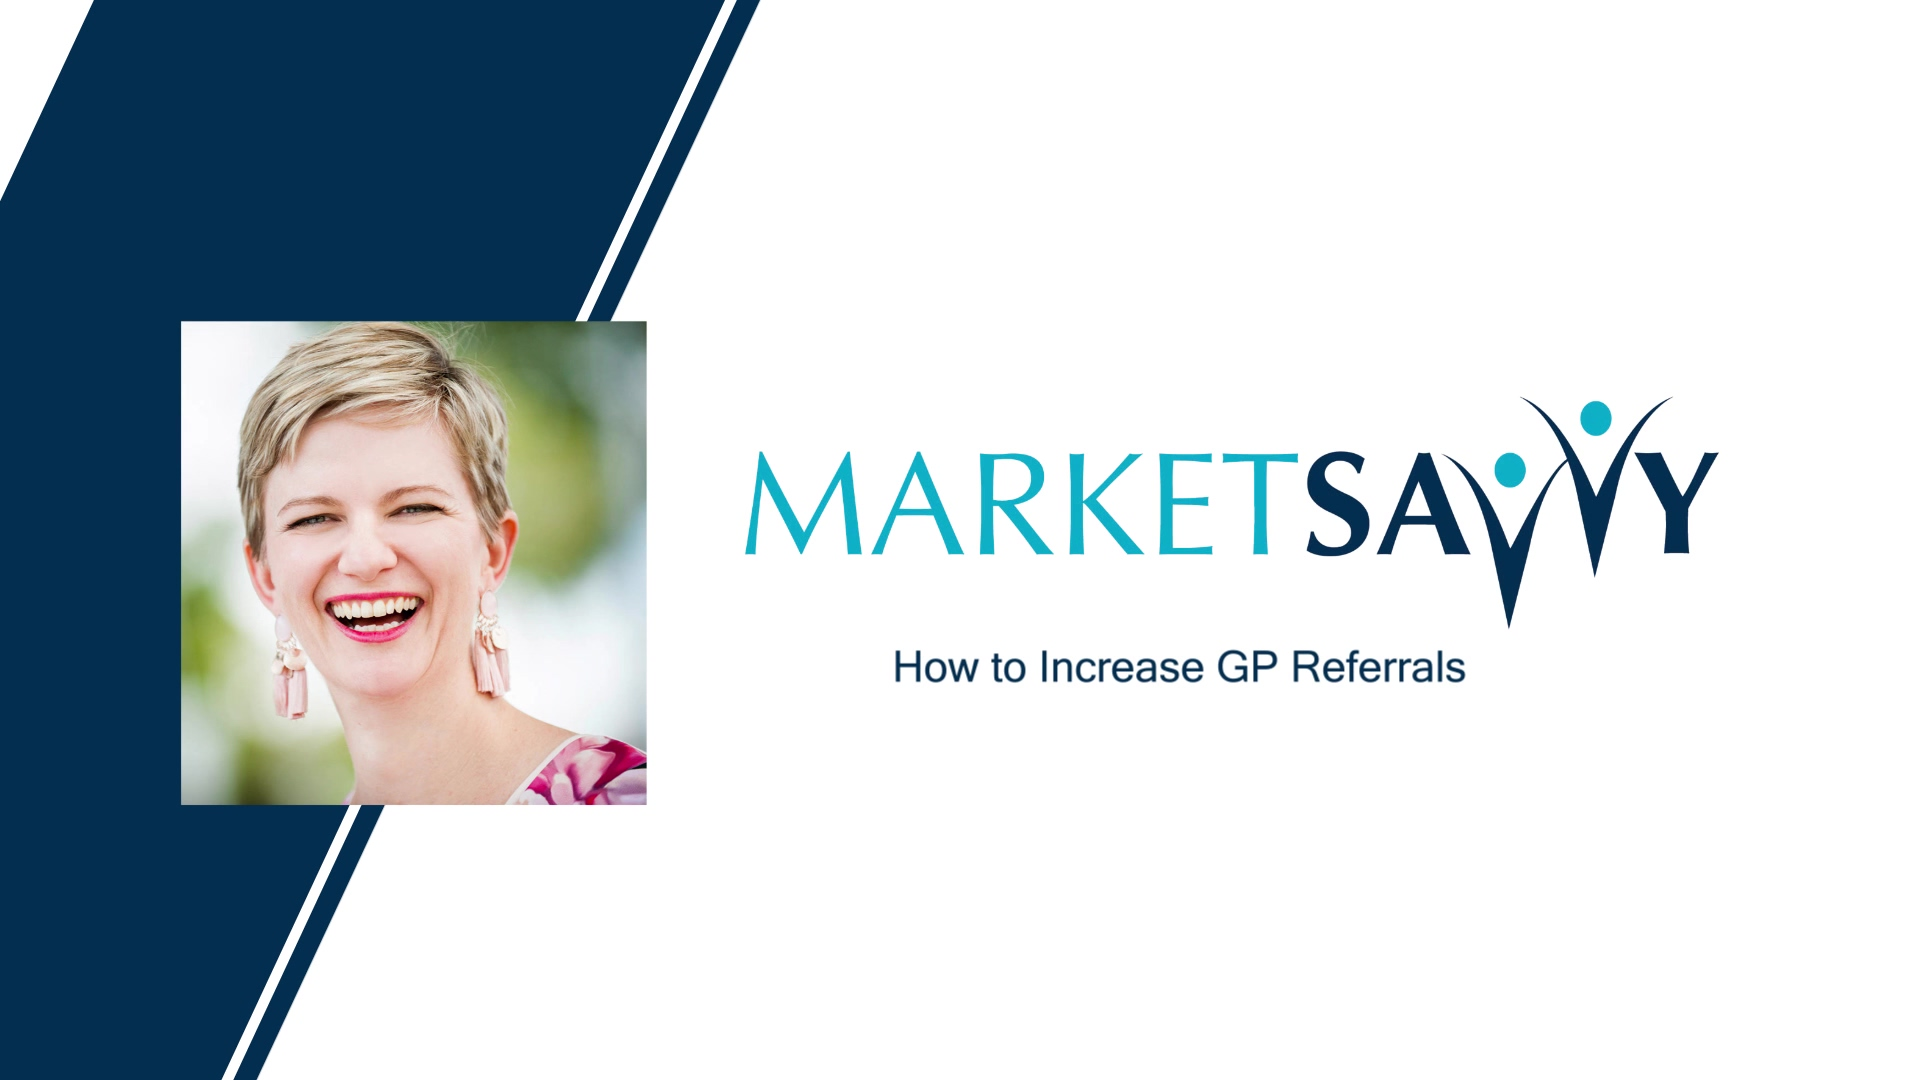 Market Savvy - How to Increase GP Referrals